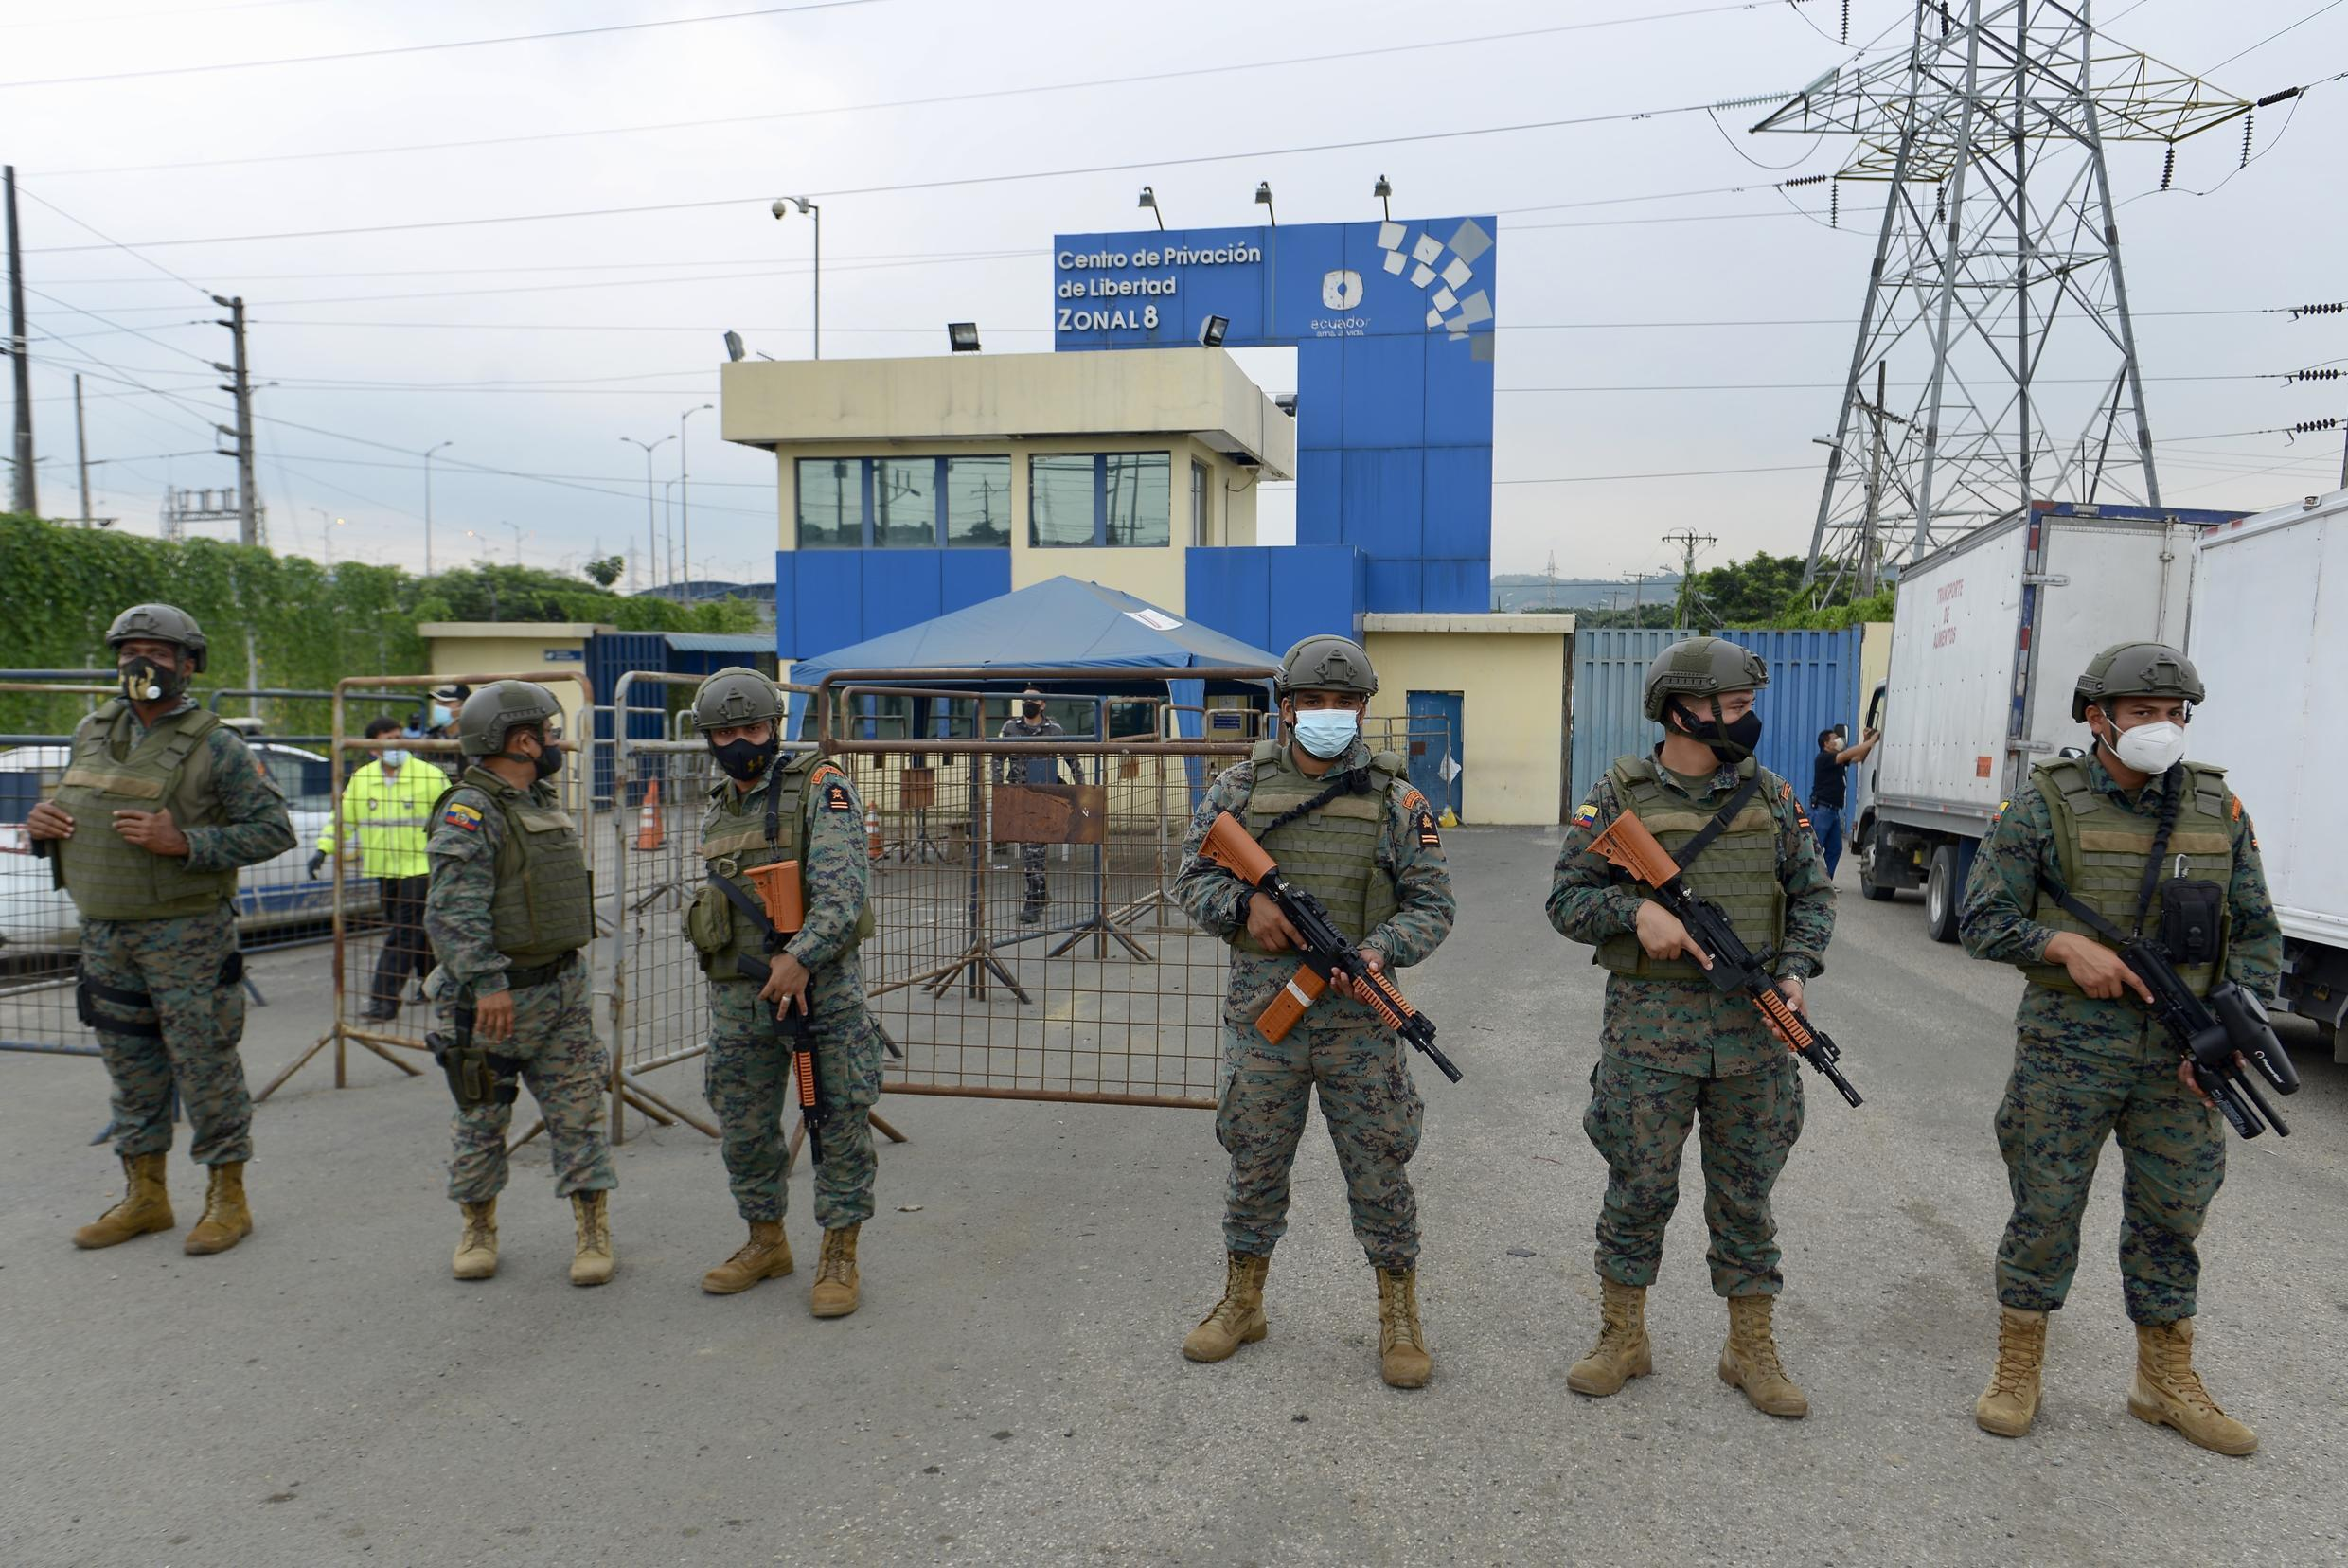 Security forces guard a prison in Ecuador, where dozens of inmates died in riots